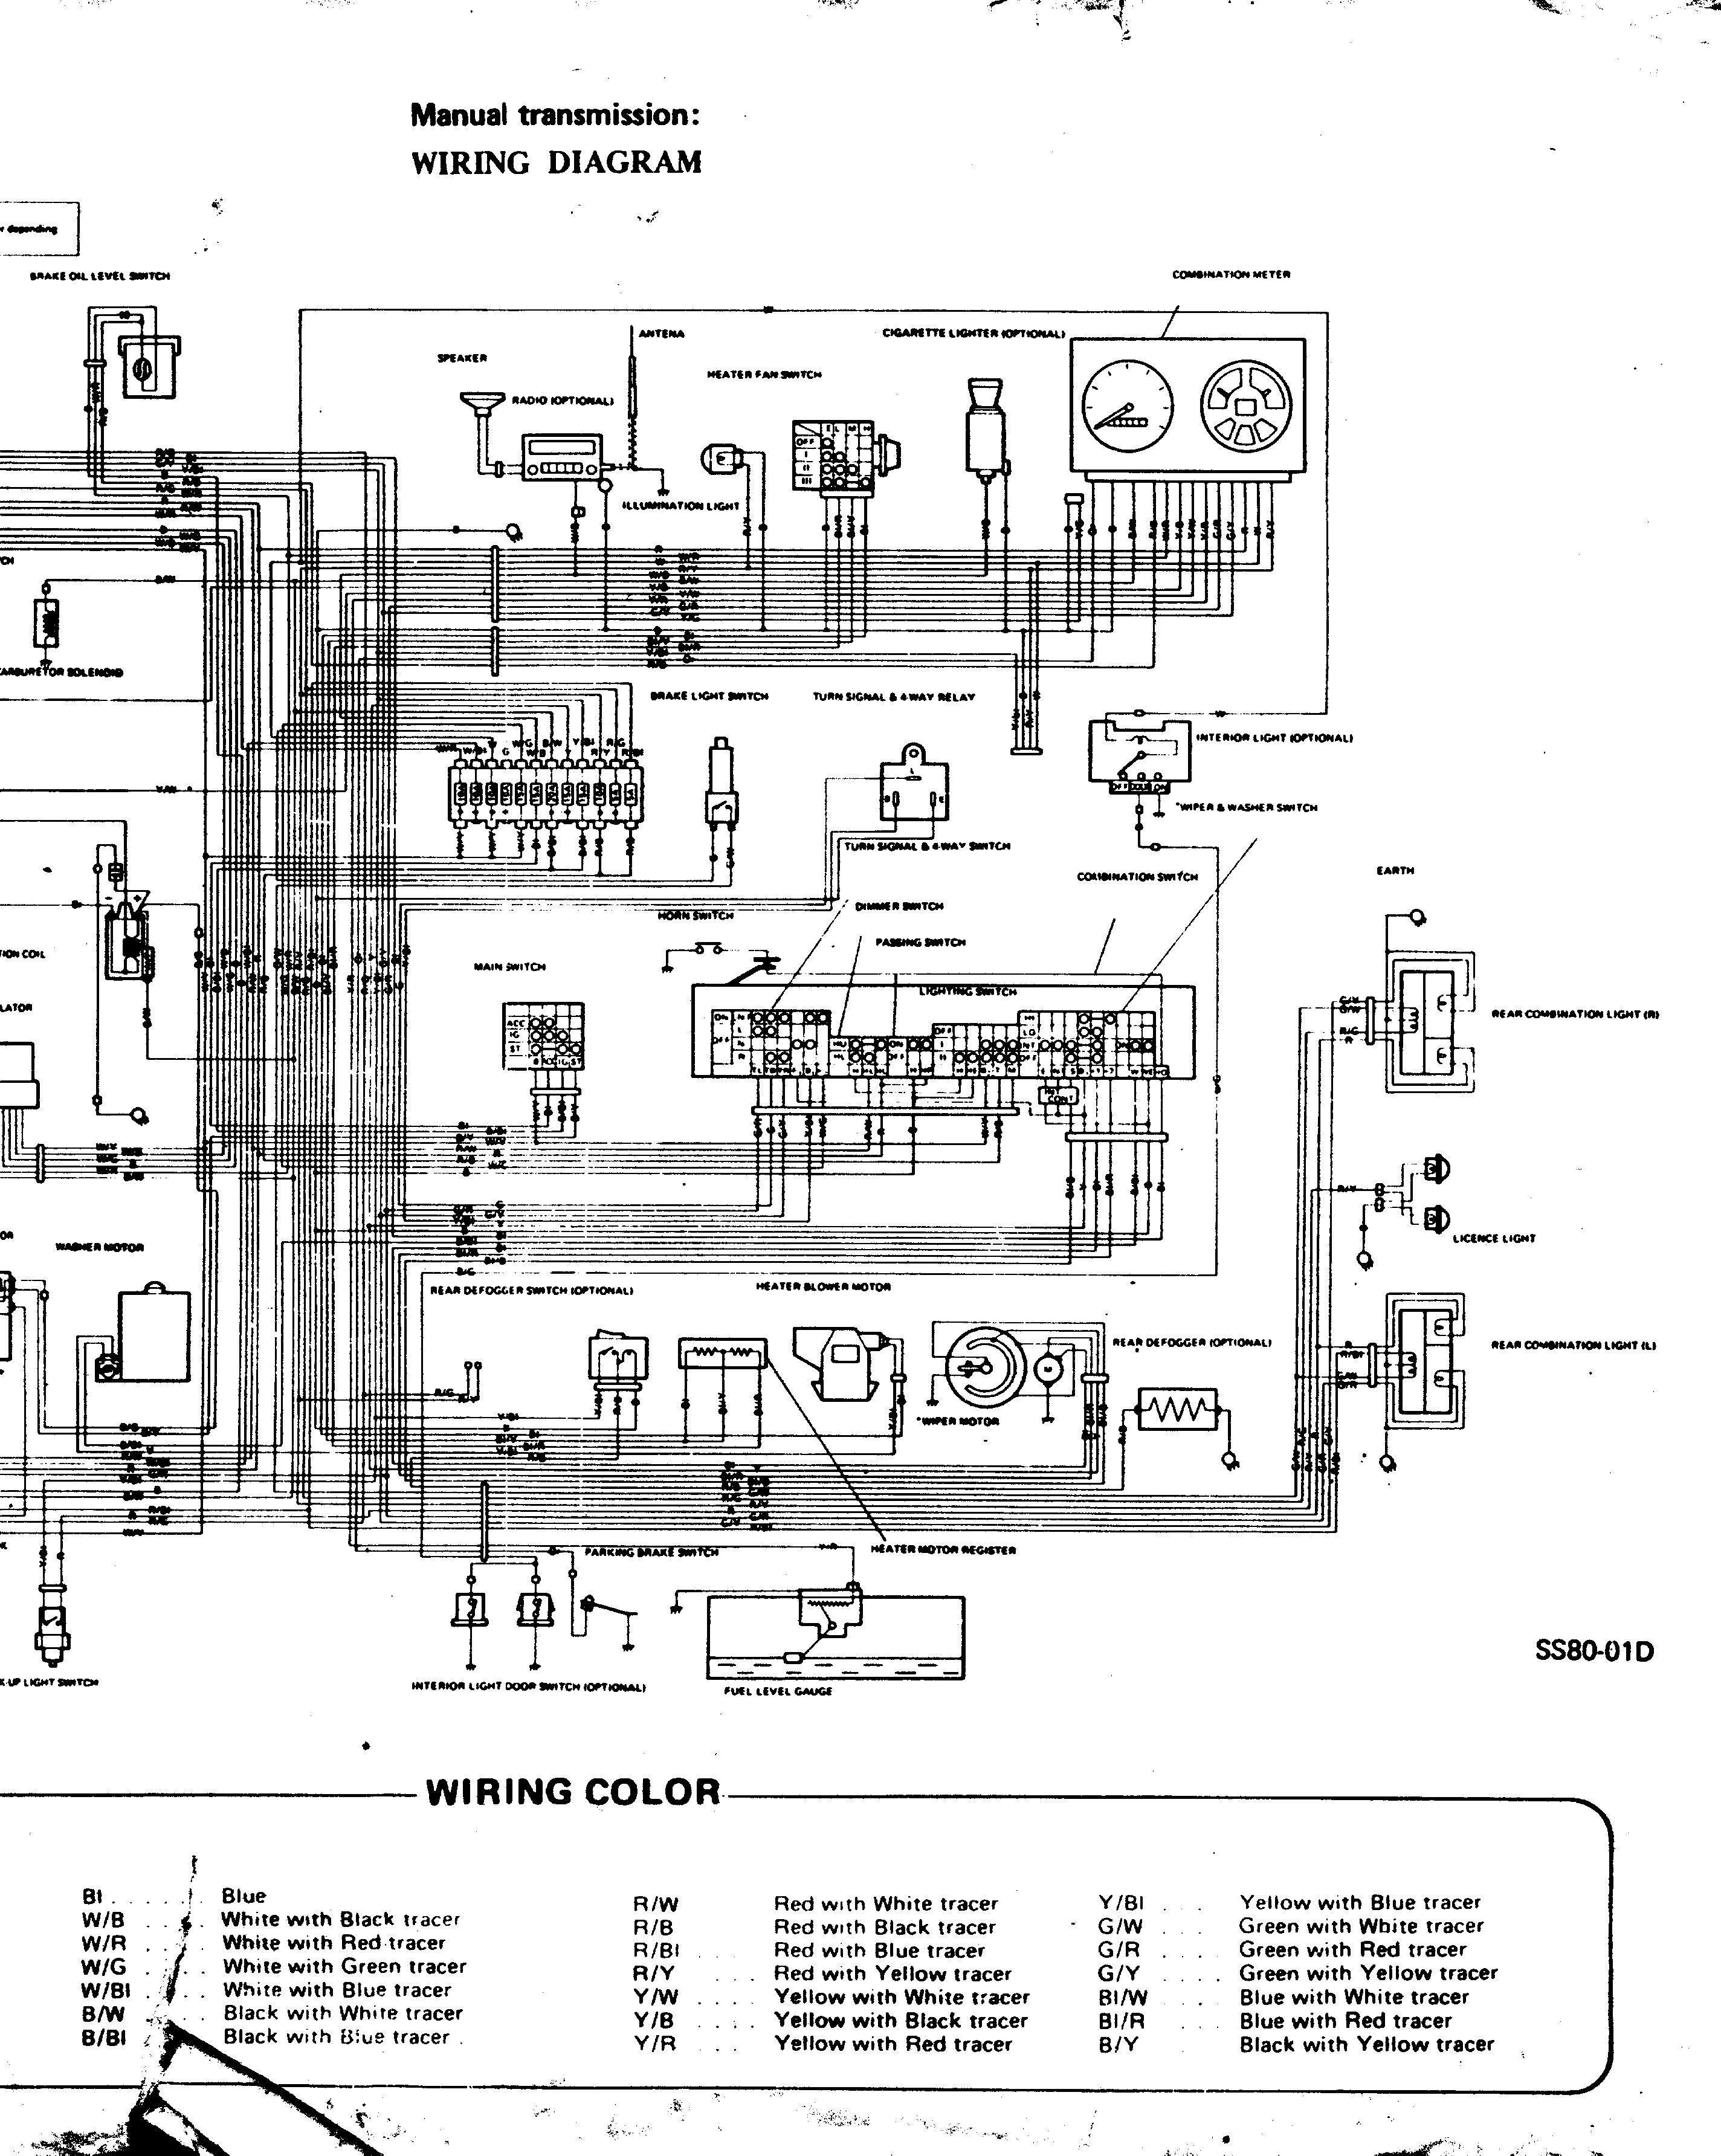 Wiring diagram vario 150 wiring diagram vario 150 u0026 wiring diagram vario 150 wiring diagram vario 150 u0026 blue fly vario developmentsc1stcolor castles asfbconference2016 Image collections